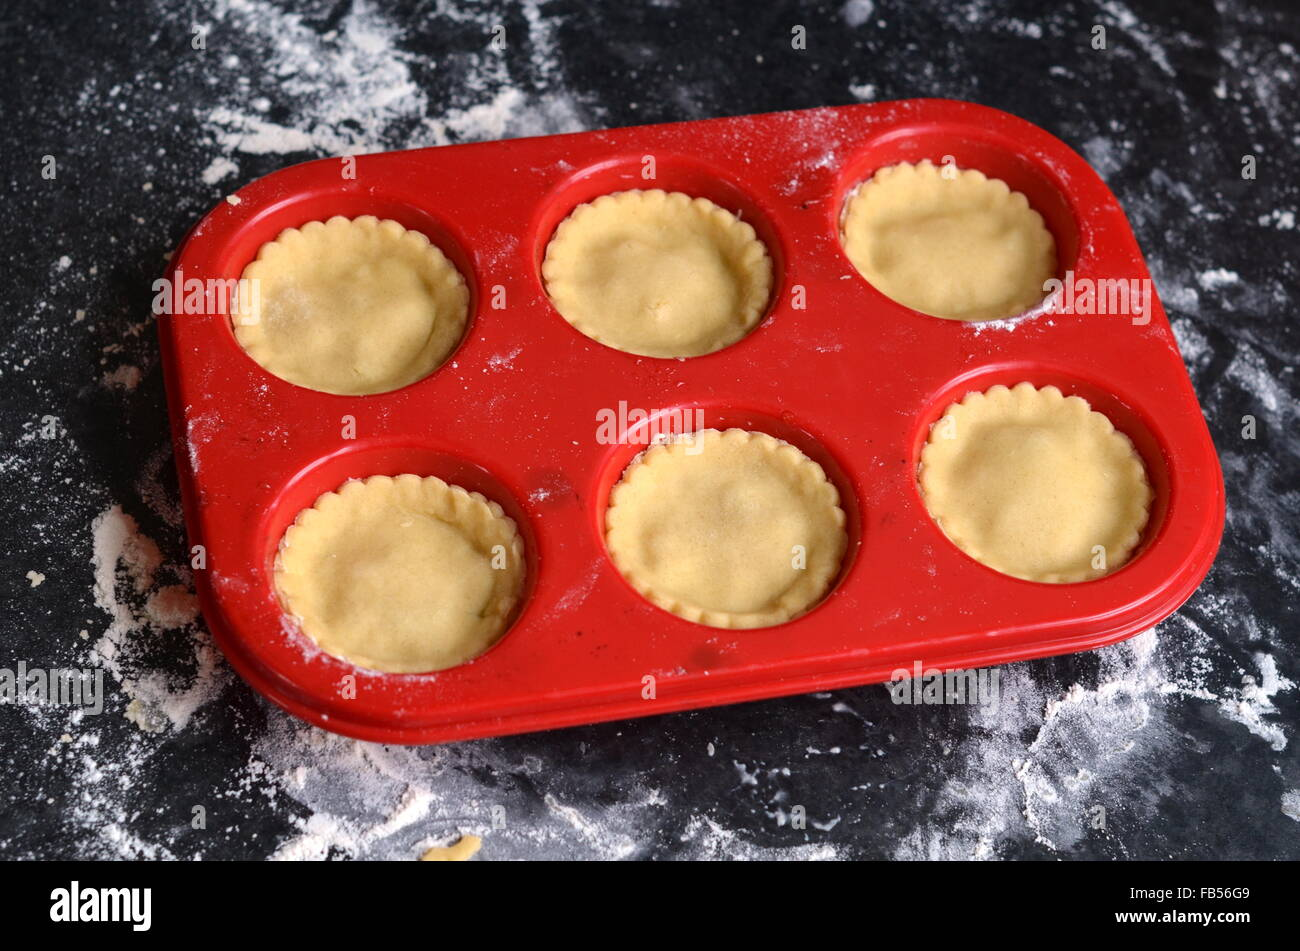 Red silicone muffin tray with unbaked mince pies on a dark floured surface - Stock Image